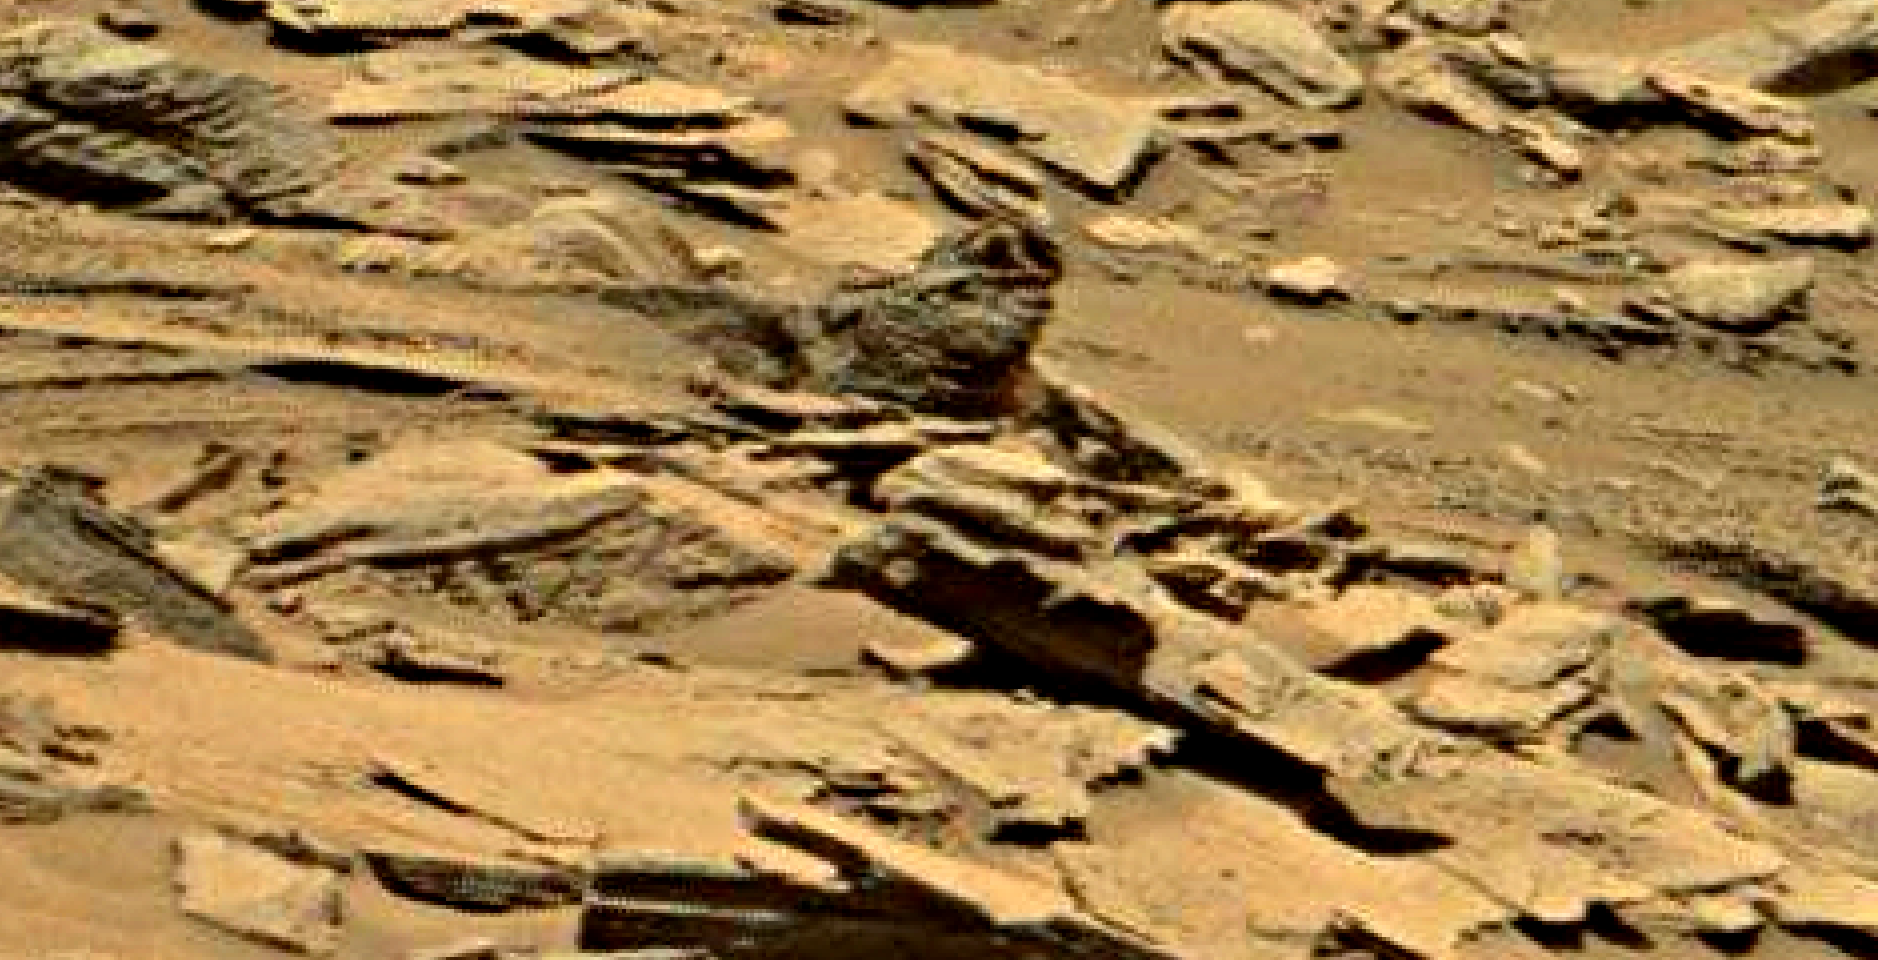 mars sol 1353 anomaly-artifacts 28a was life on mars